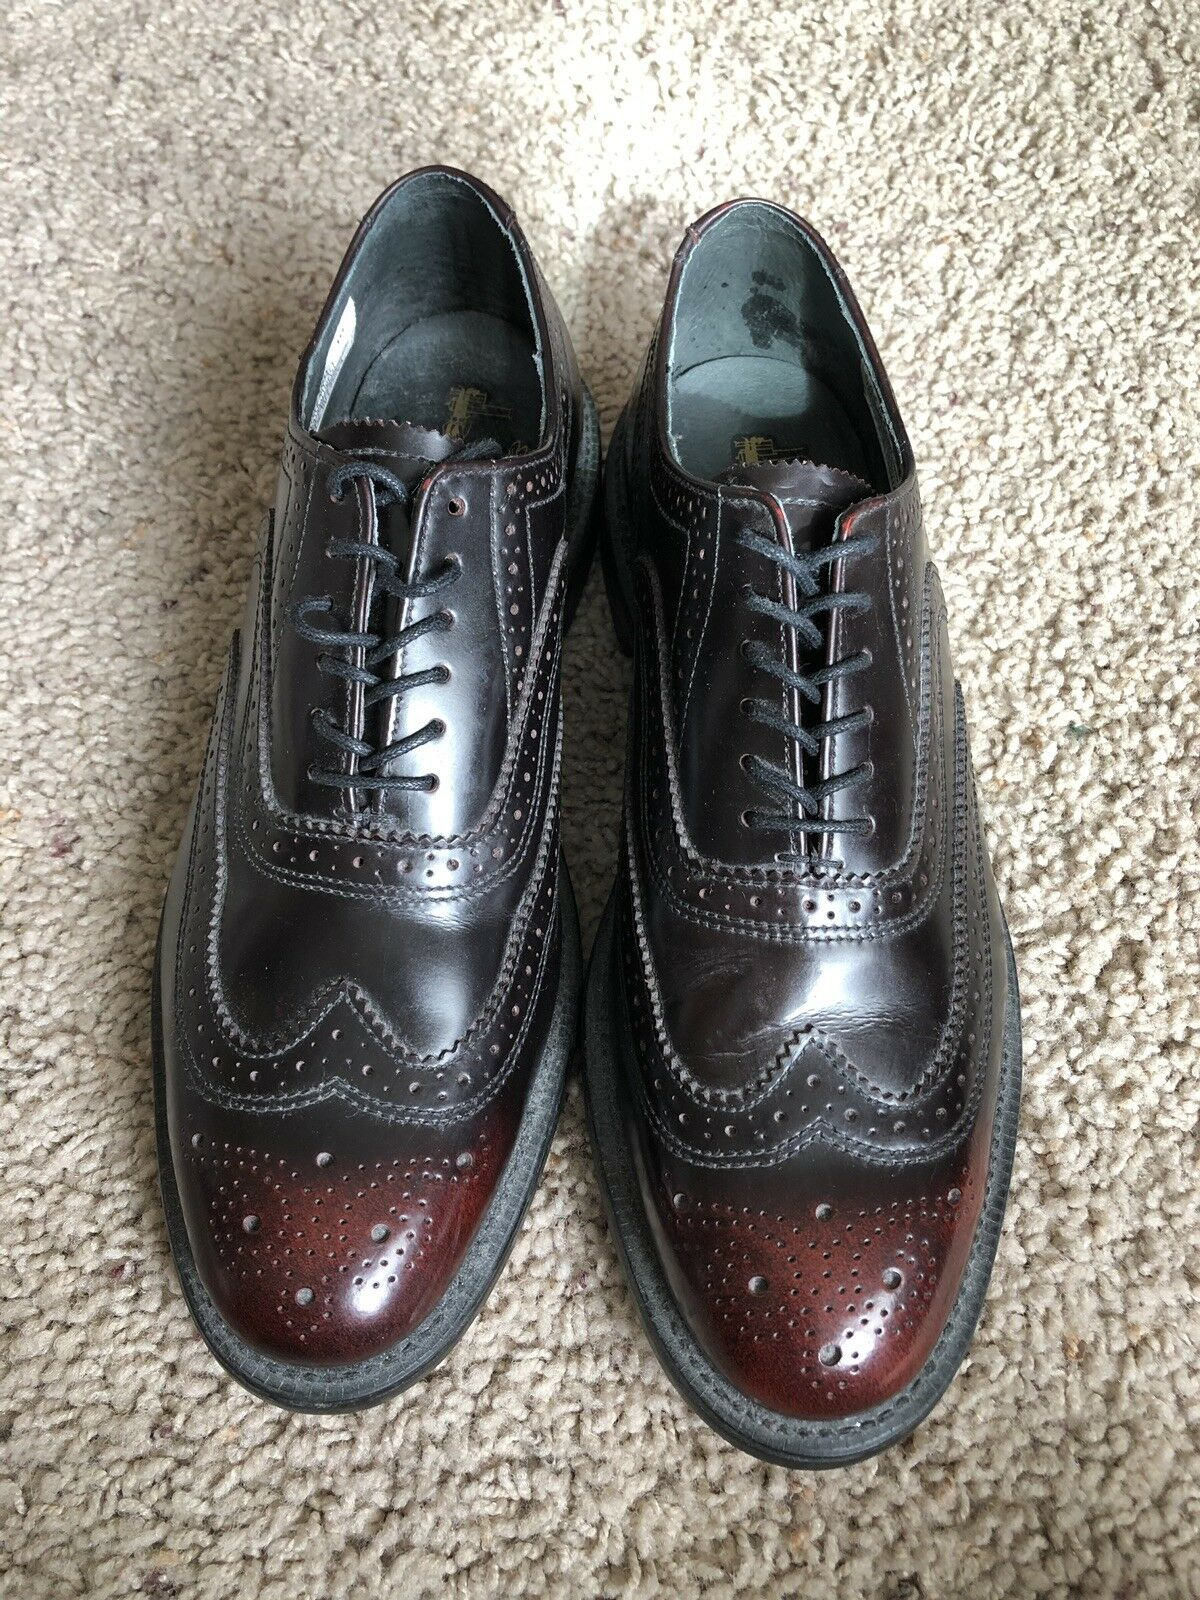 Executive Imperials Men's 10 D Dark Burgundy Leather Wingtips Lace Oxford shoes